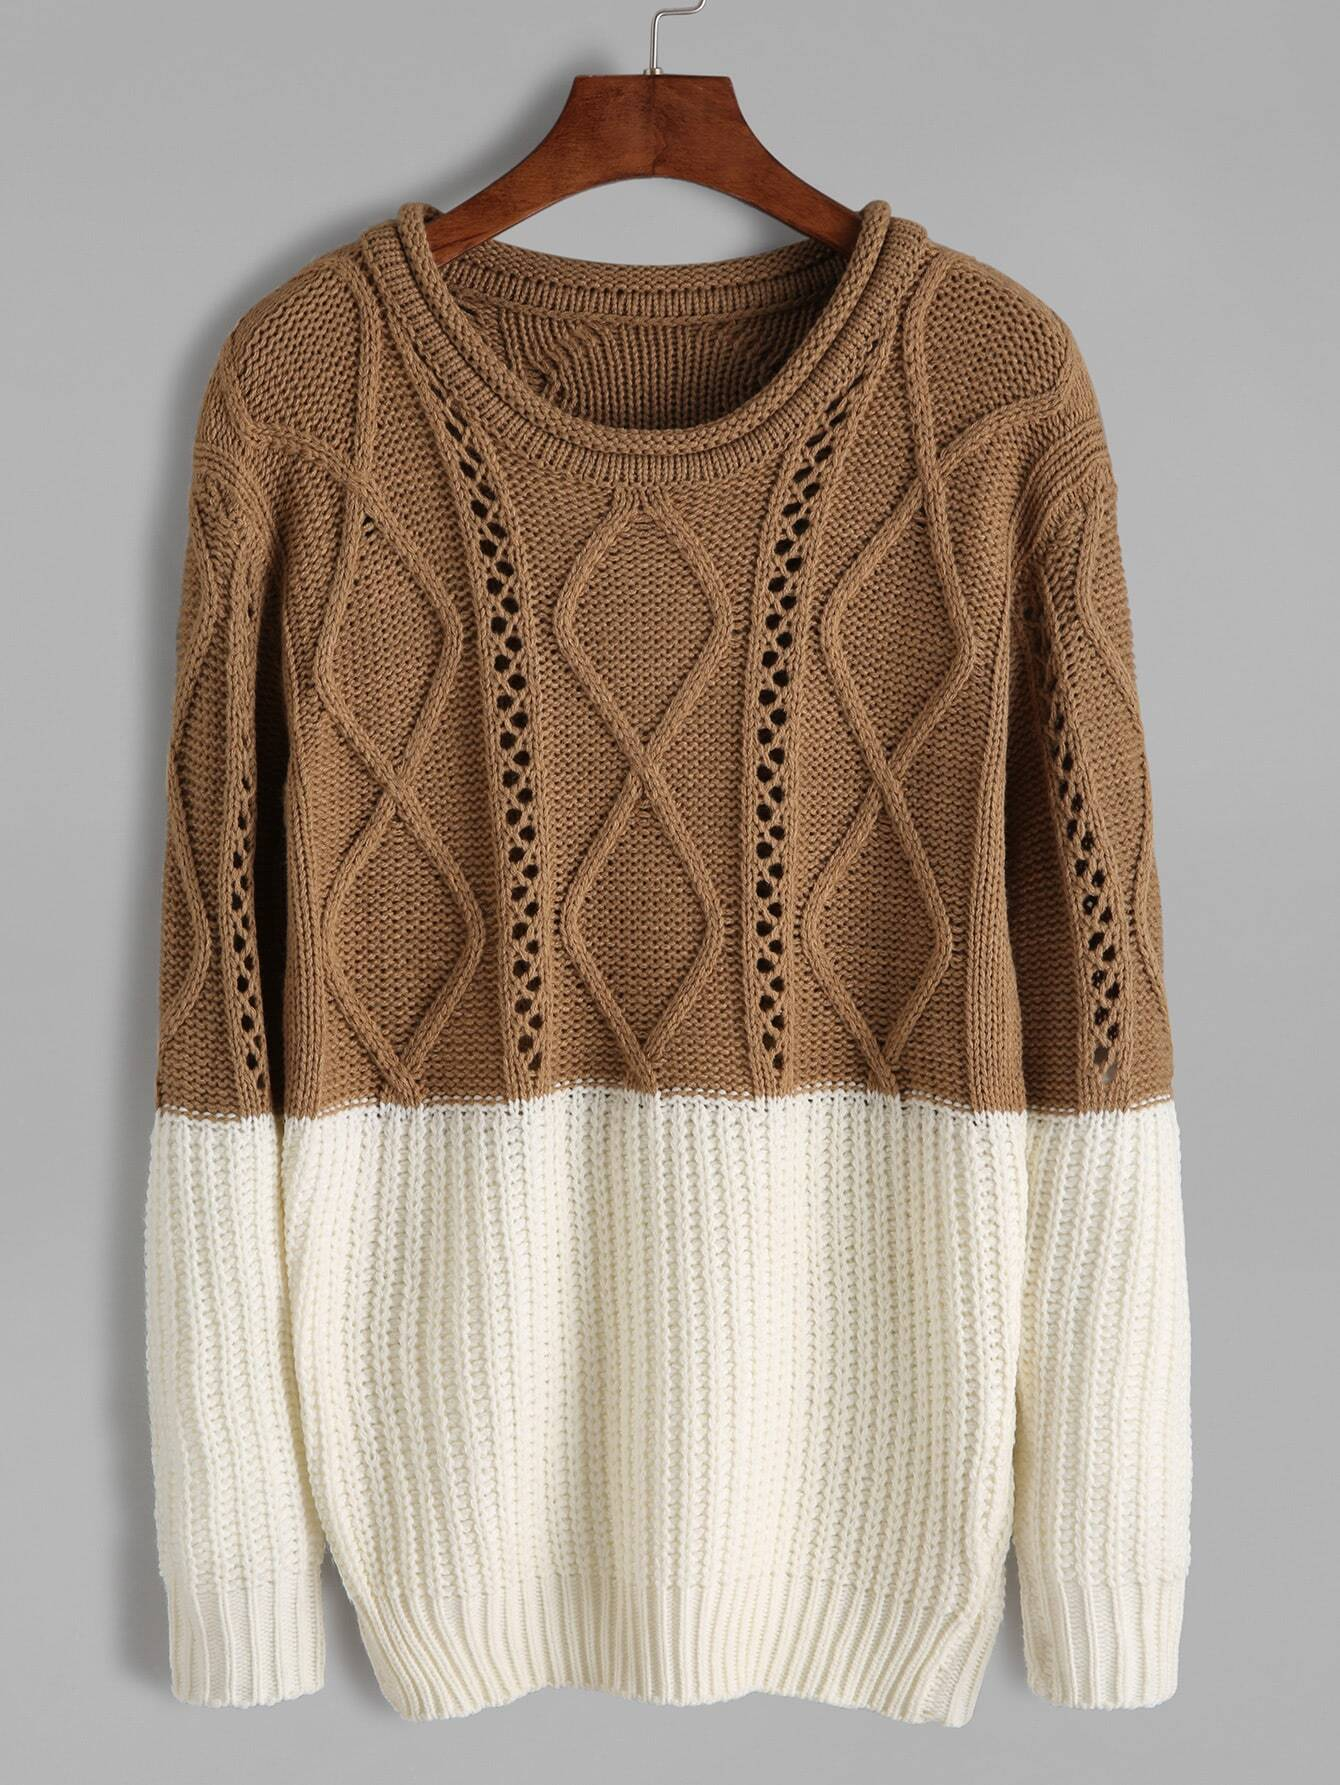 Contrast Mixed Knit Pullover Sweater sweater160929462